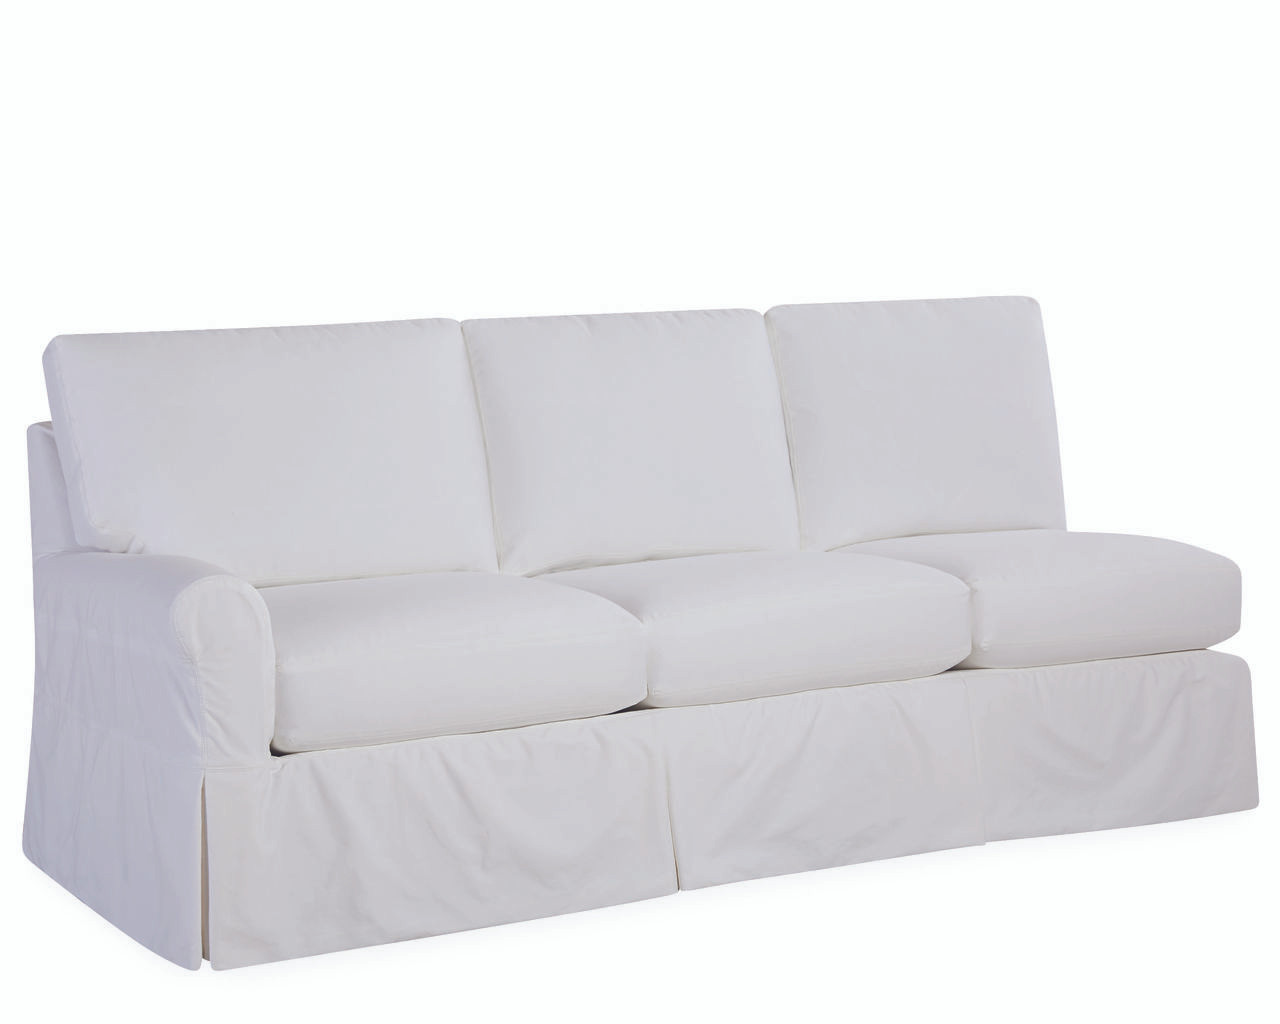 one arm sofa slipcover crate and barrel margot platinum lee essentials slipcovered hover over image to zoom